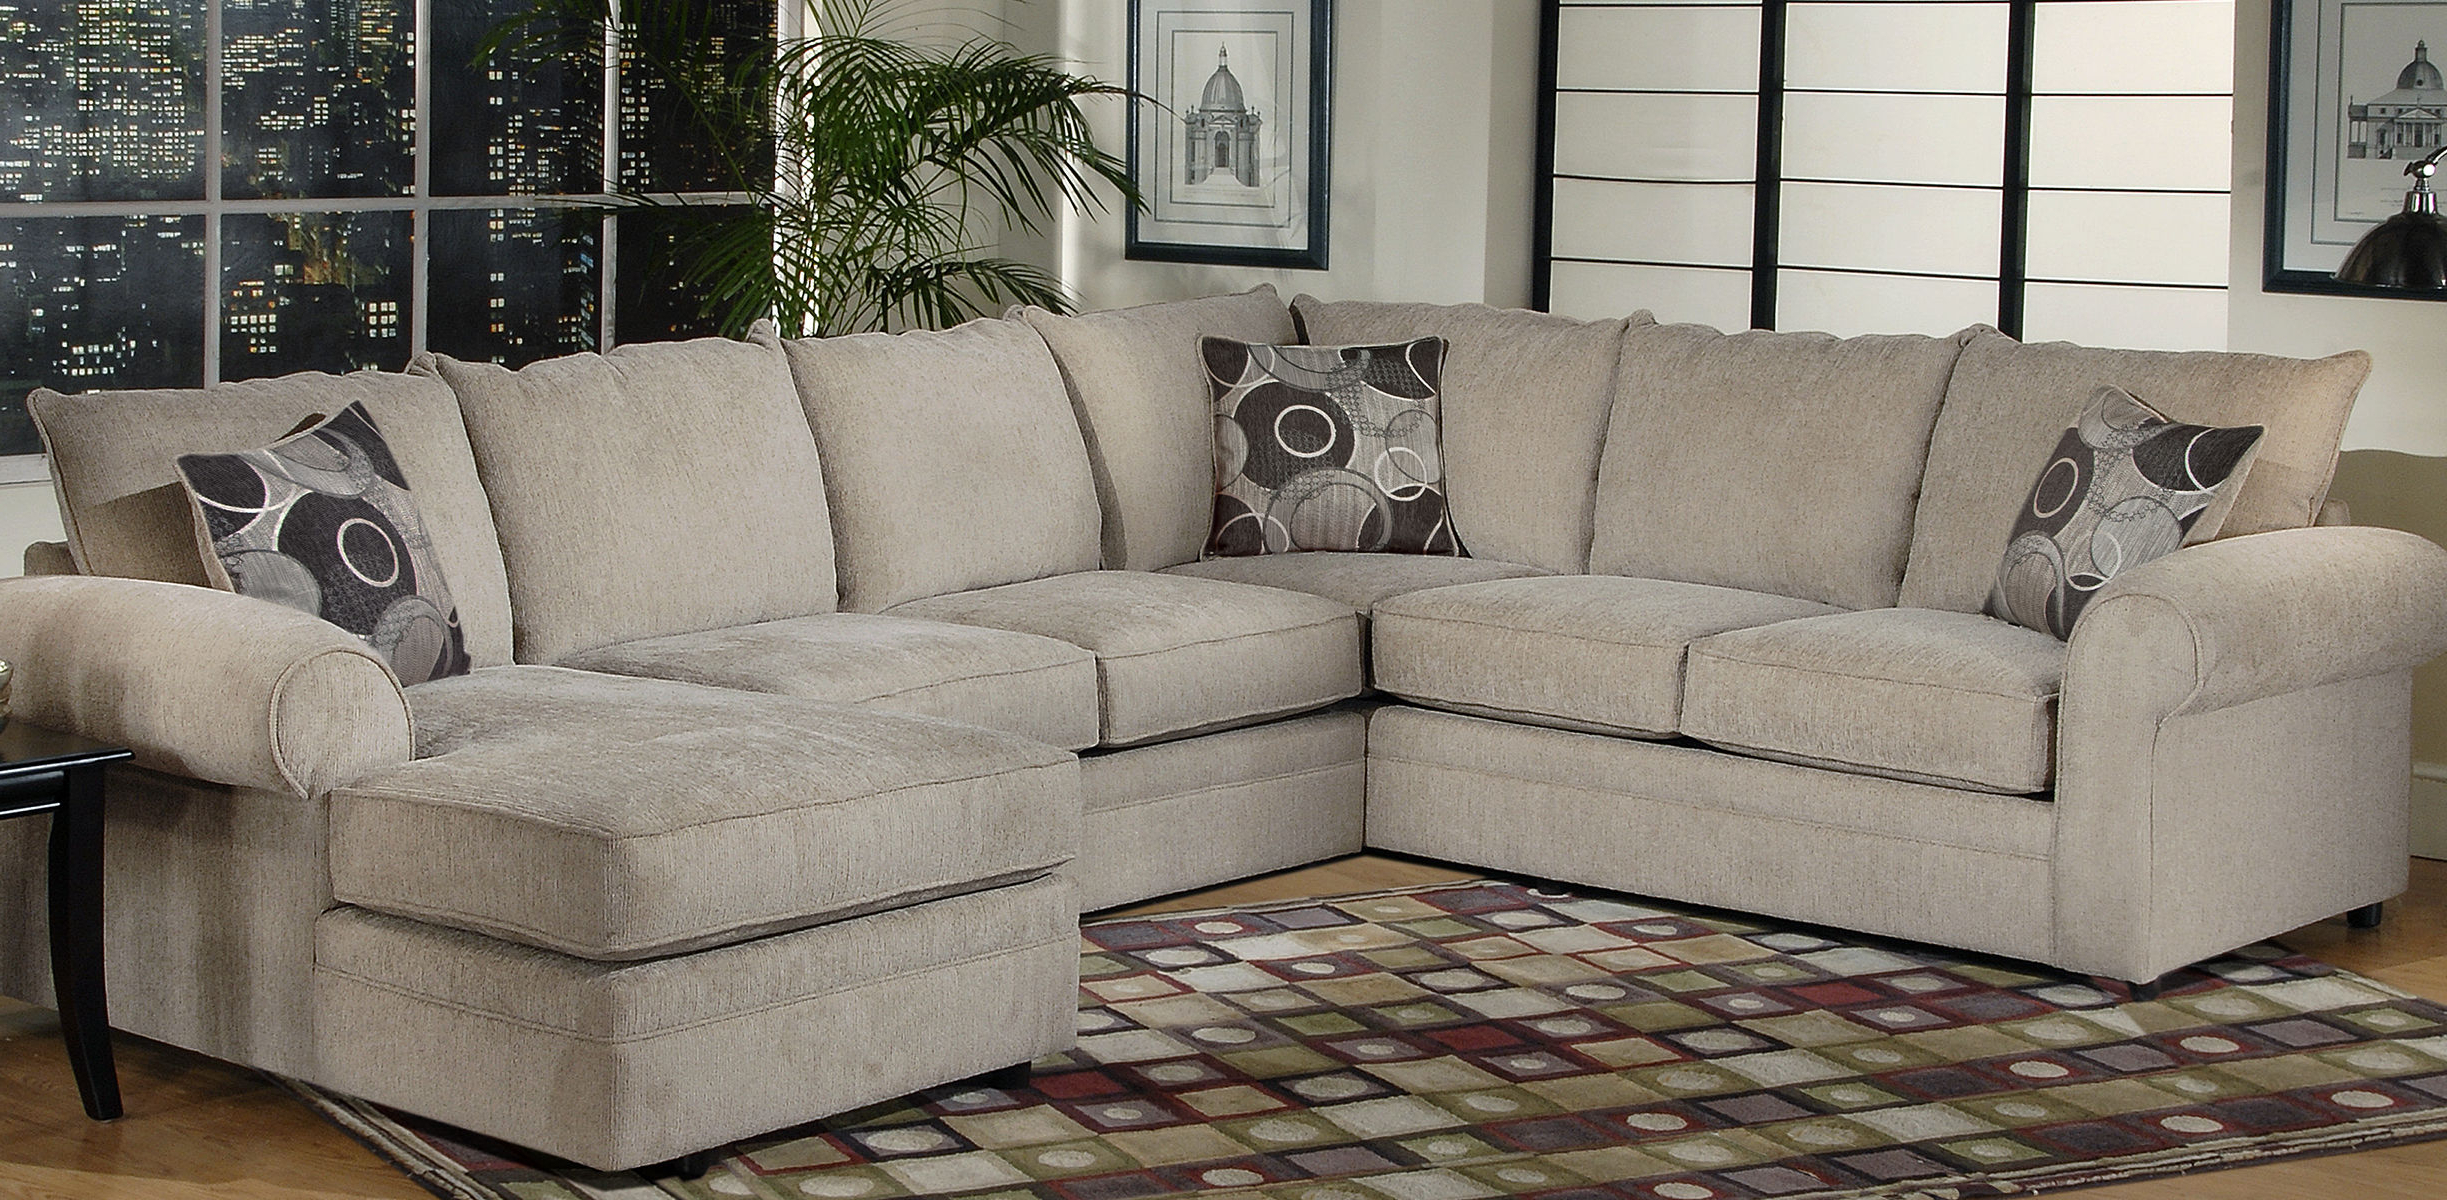 Most Up To Date Serta Upholstery Sectionals: Ashas Spiritual Essence Throughout Harmon Roll Arm Sectional Sofas (View 1 of 25)